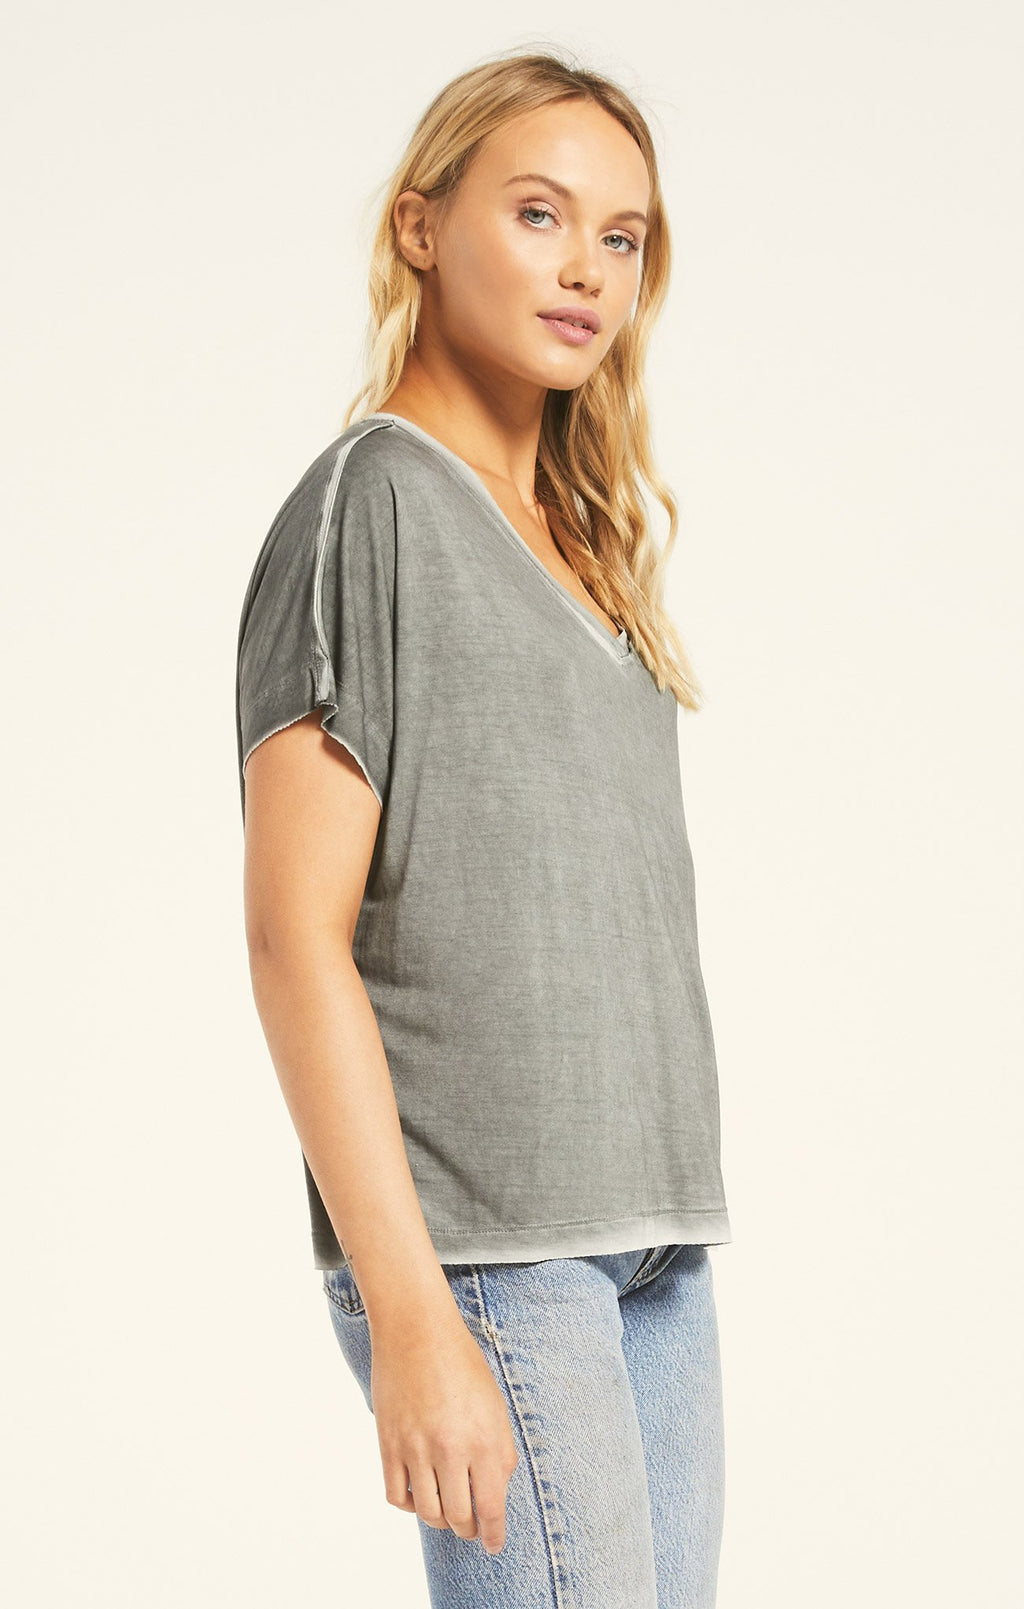 Z Supply Mischa Sleek V Neck - Ash Green